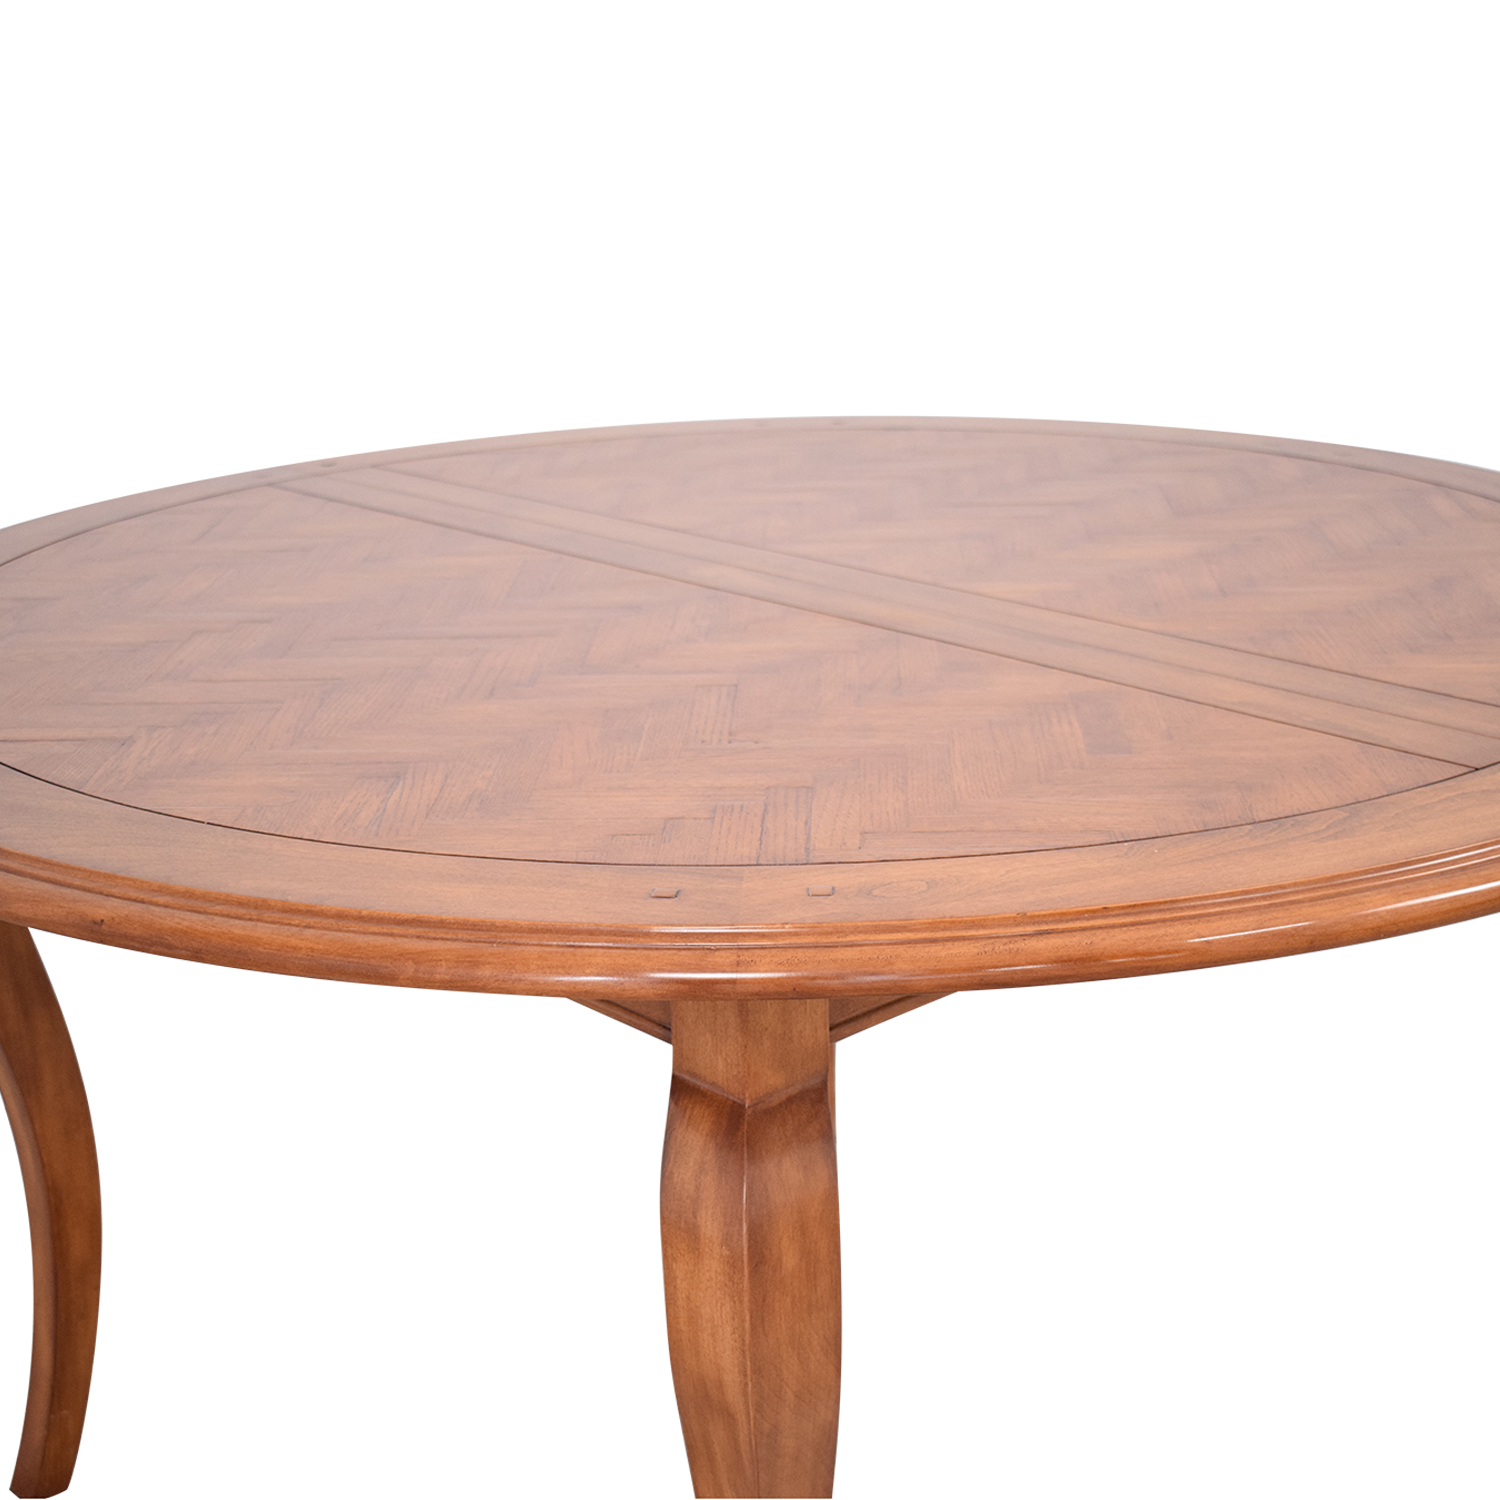 buy  Round Dining Table online